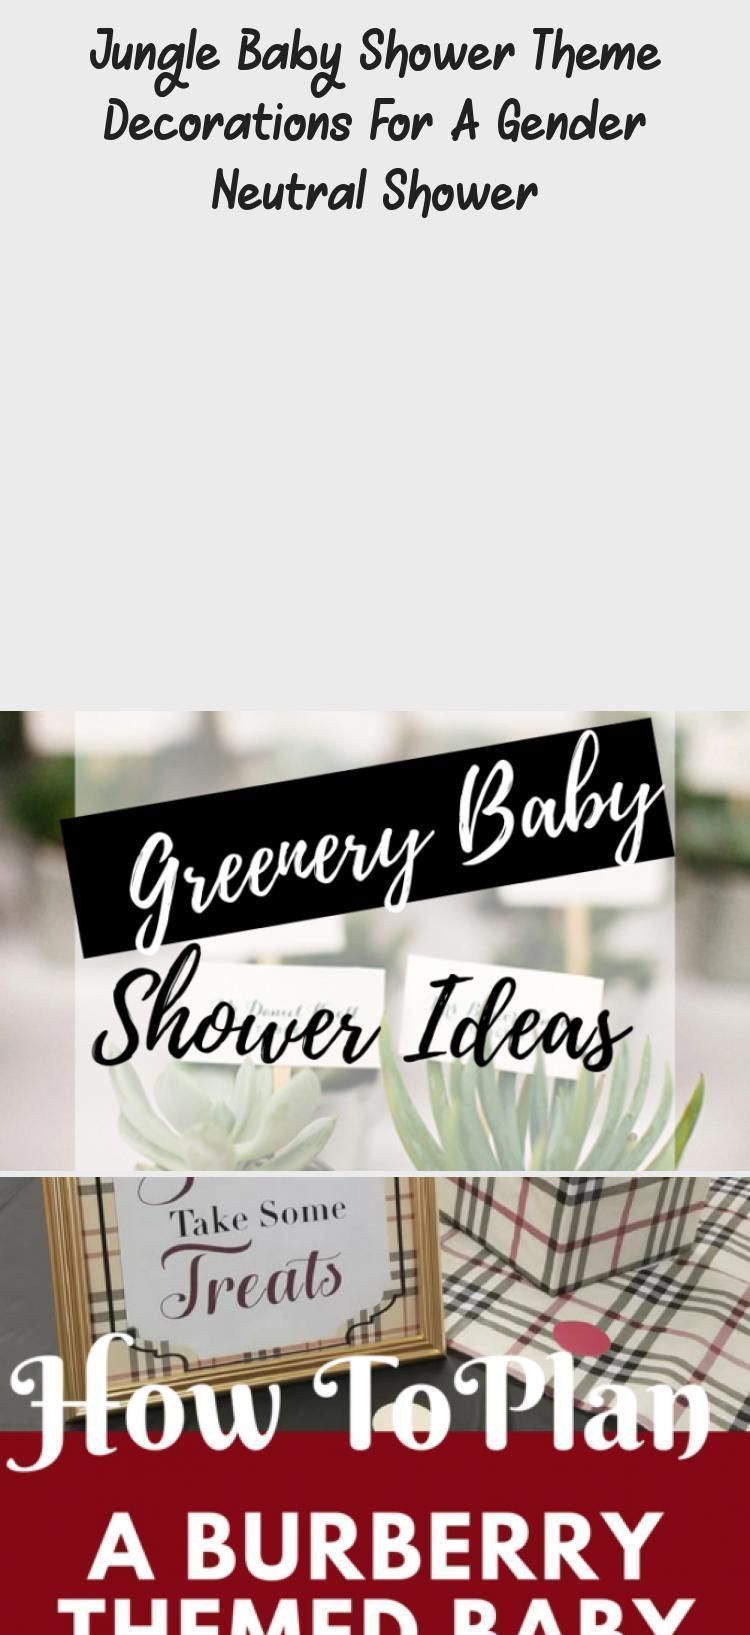 Photo of Neutral party ideas #gender Jungle Baby Shower Themed decorations for a …